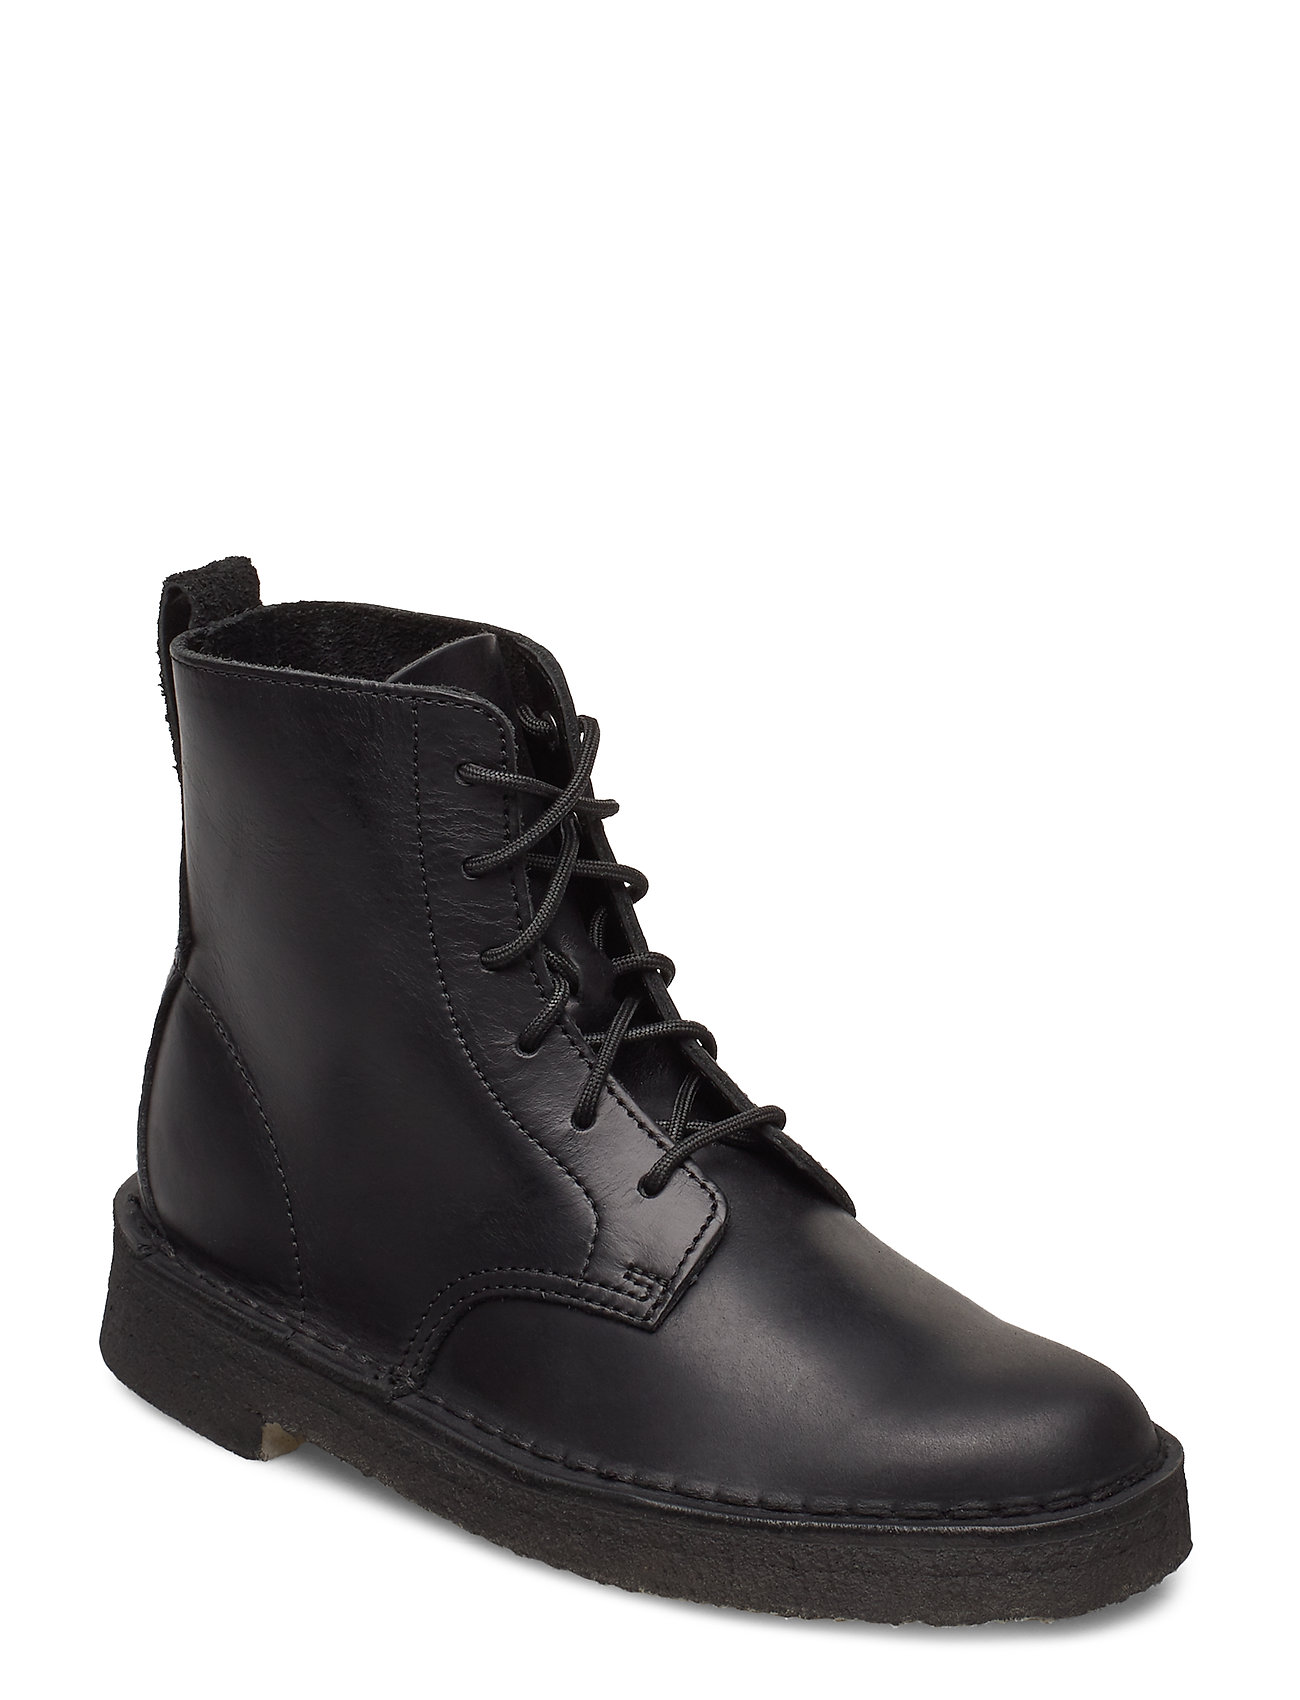 Image of Desert Mali. Shoes Boots Ankle Boots Ankle Boot - Flat Sort Clarks Originals (3432607573)